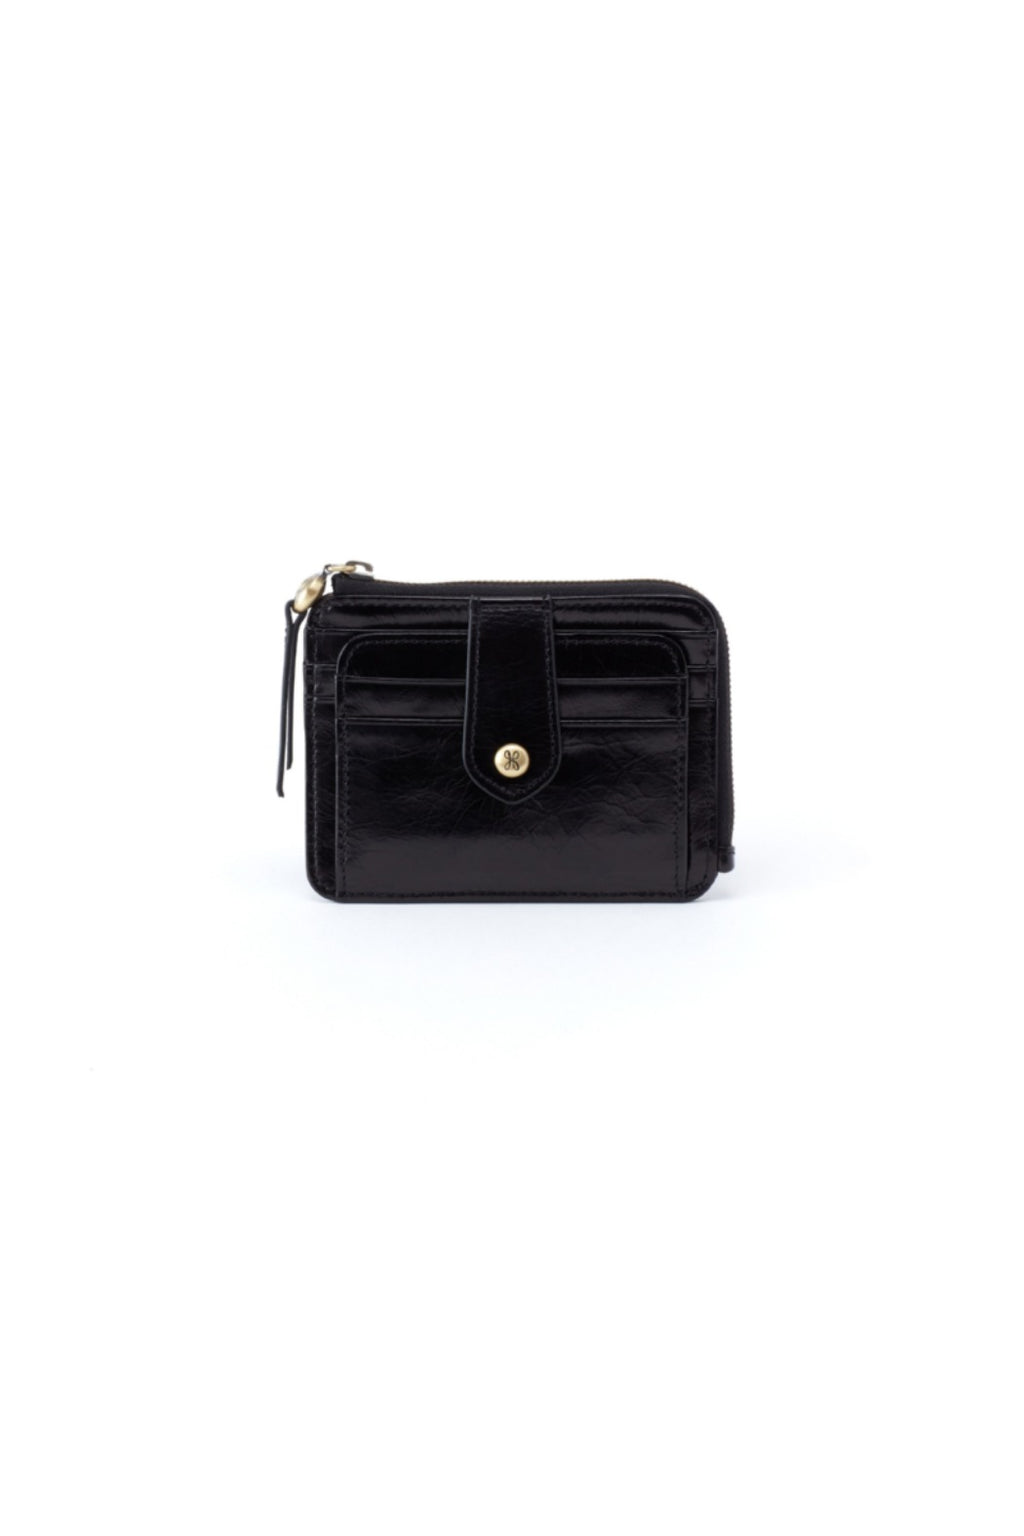 Hobo Poco Wallet - Black